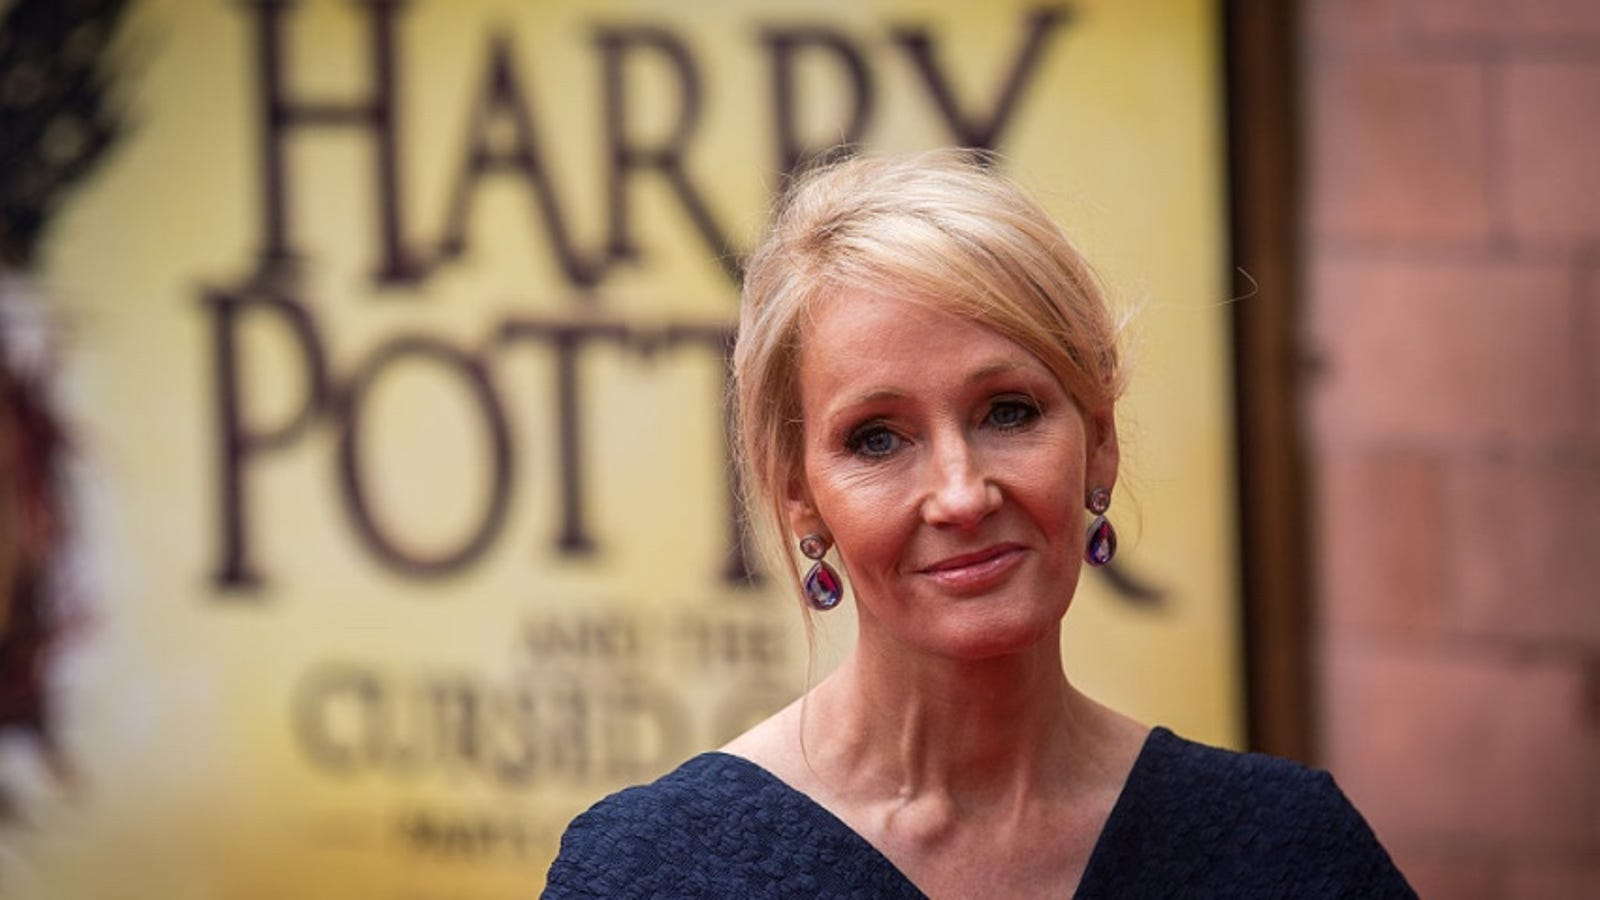 Forum on this topic: Katie kuips see through, harry-potters-birth-makes-jk-rowling-cry/